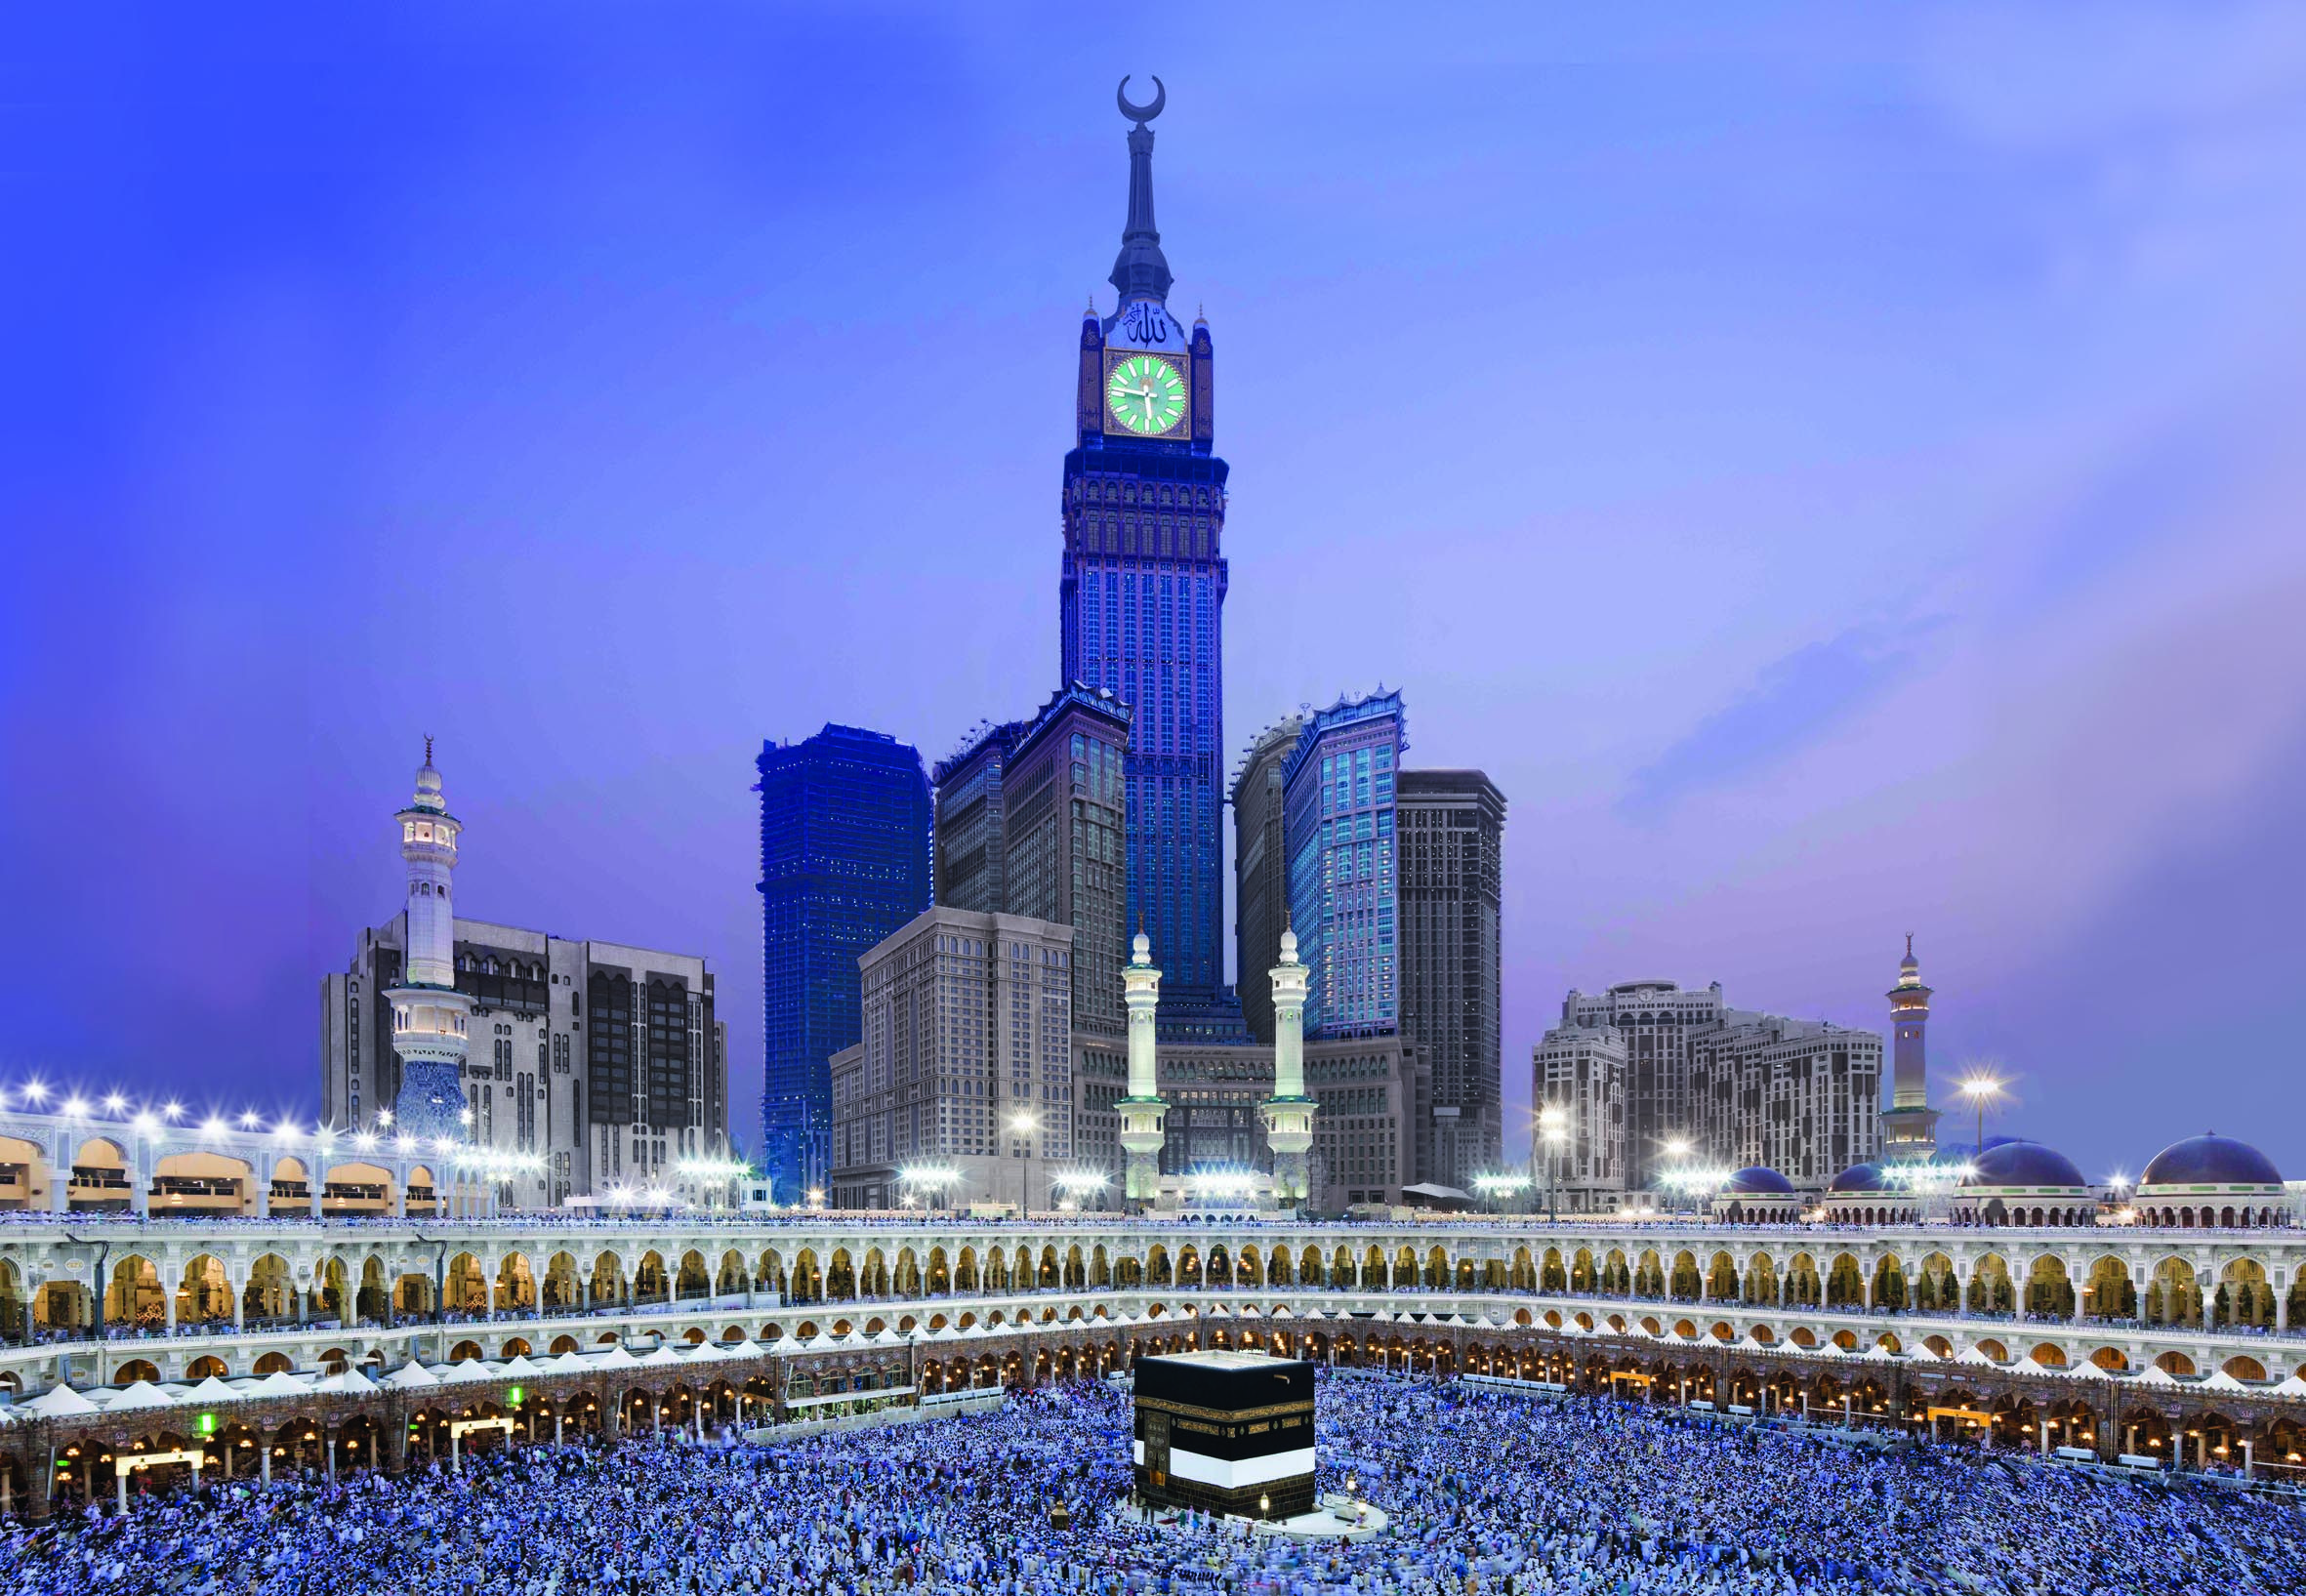 The Most Majestic Place In The World Makkah